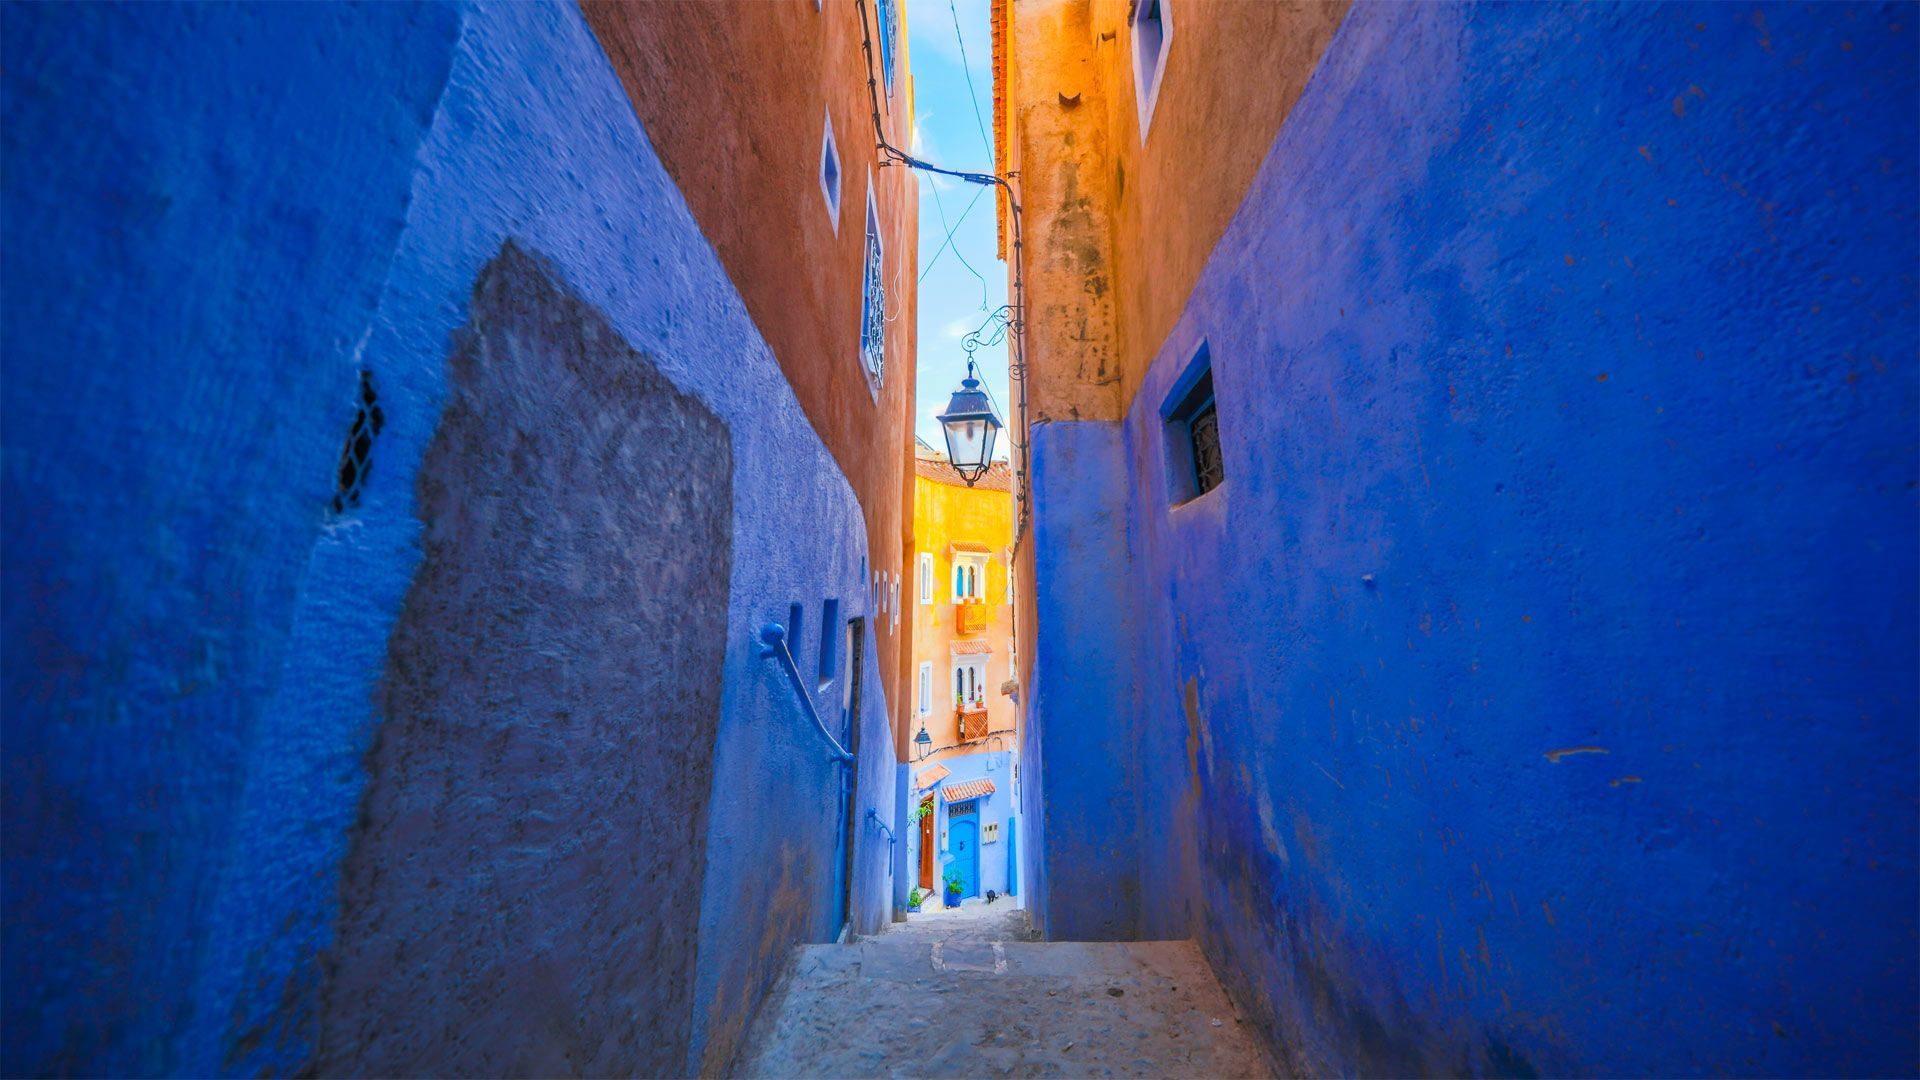 Blue walls of Chefchaouen, Morocco